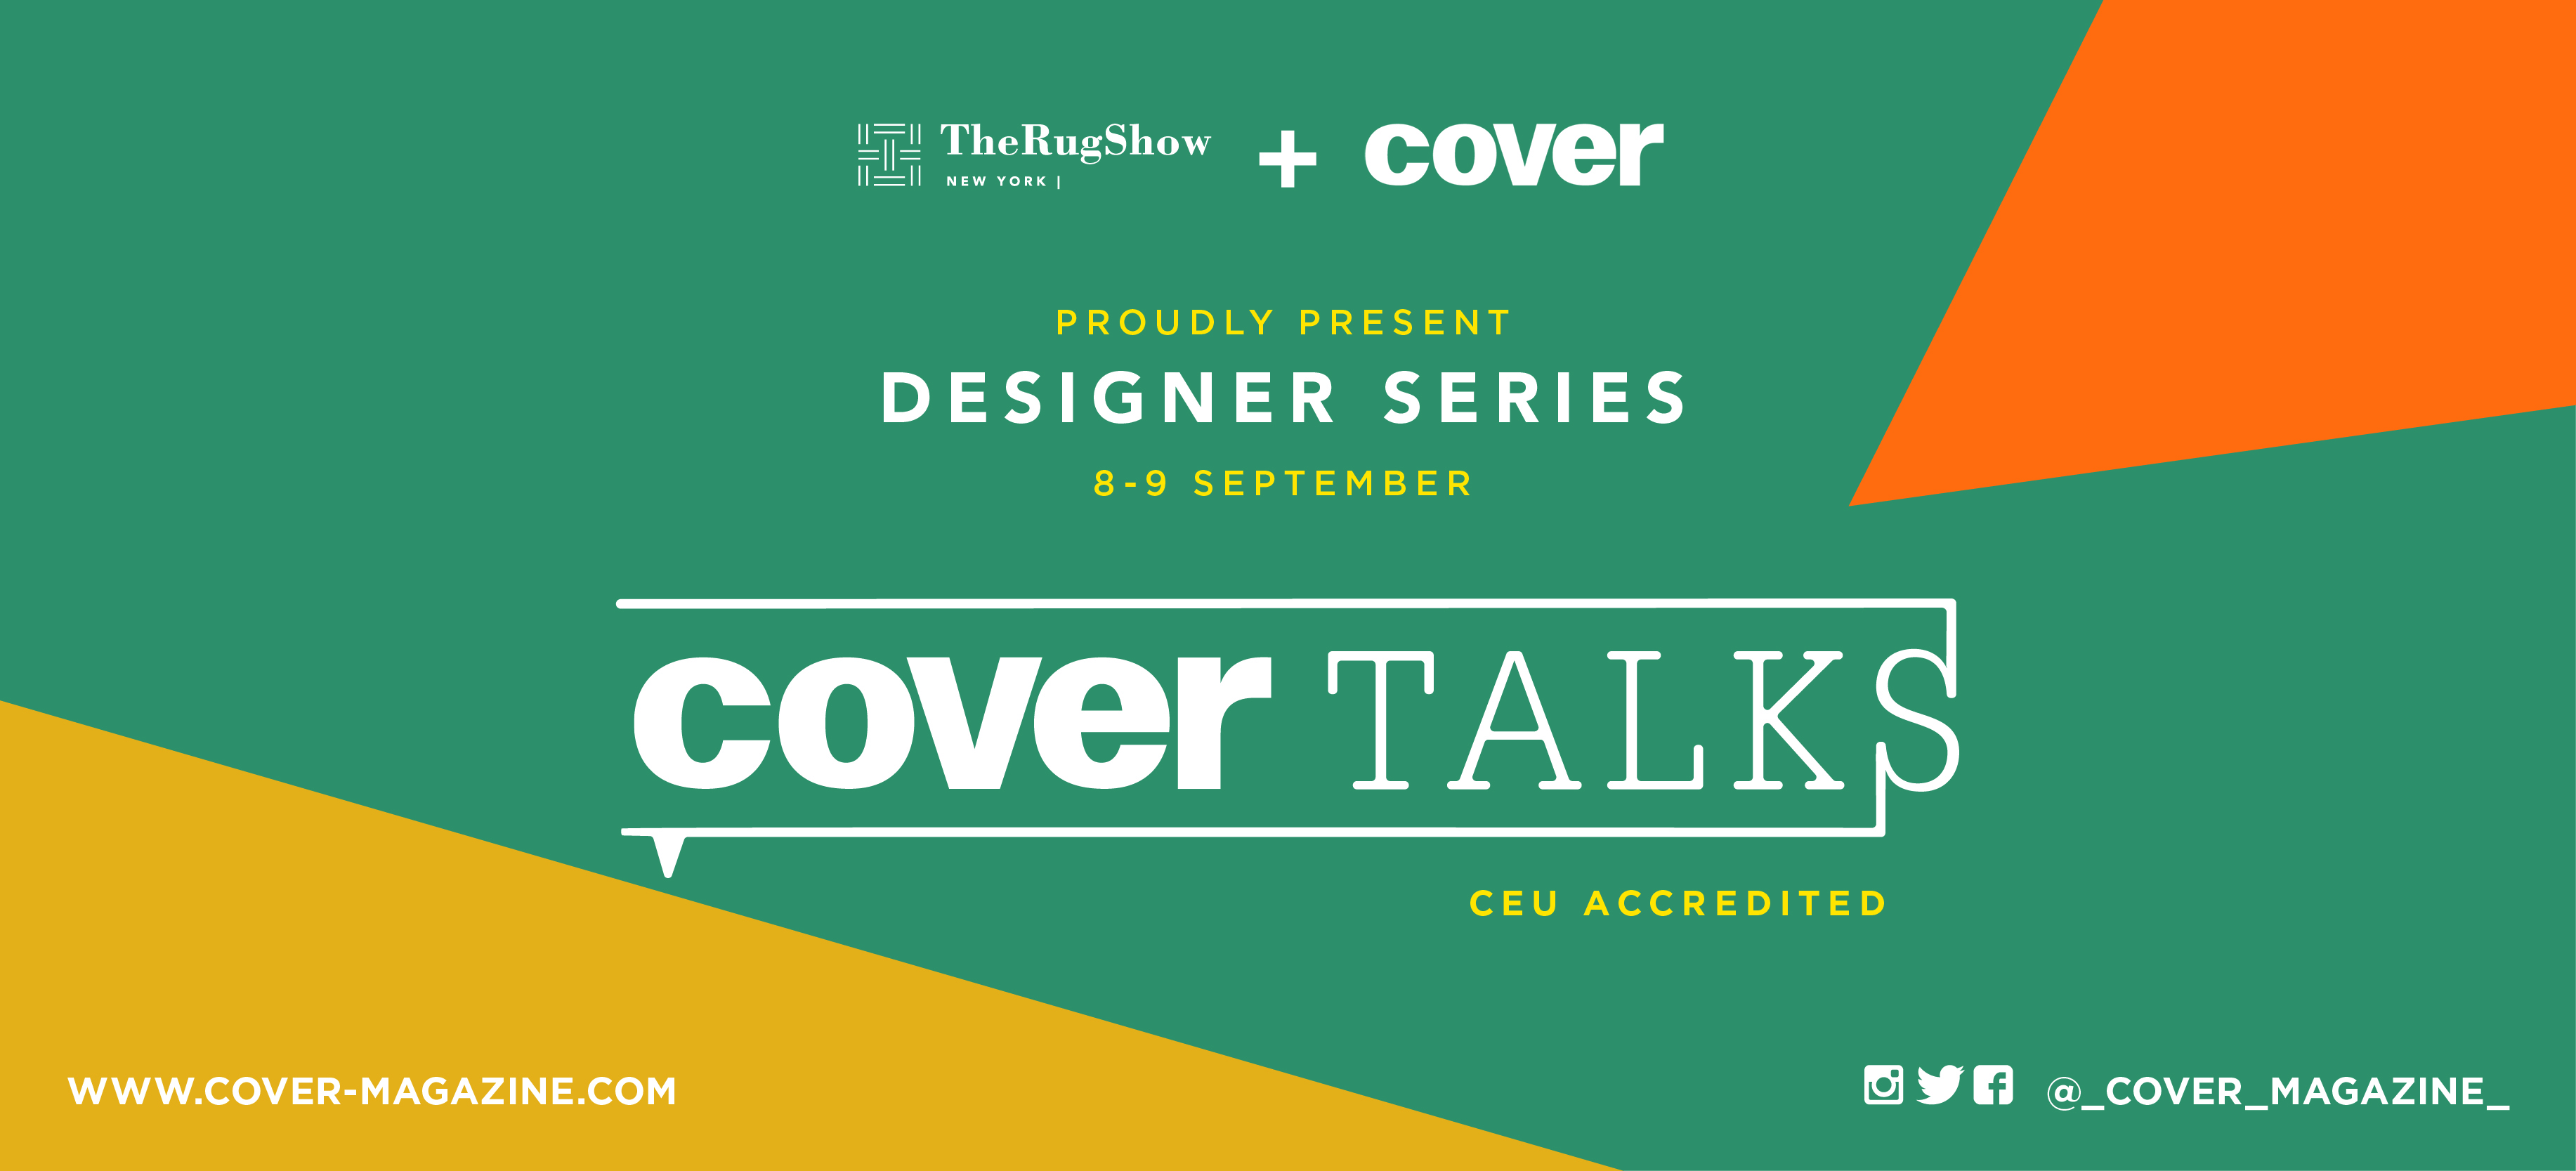 COVER Talks